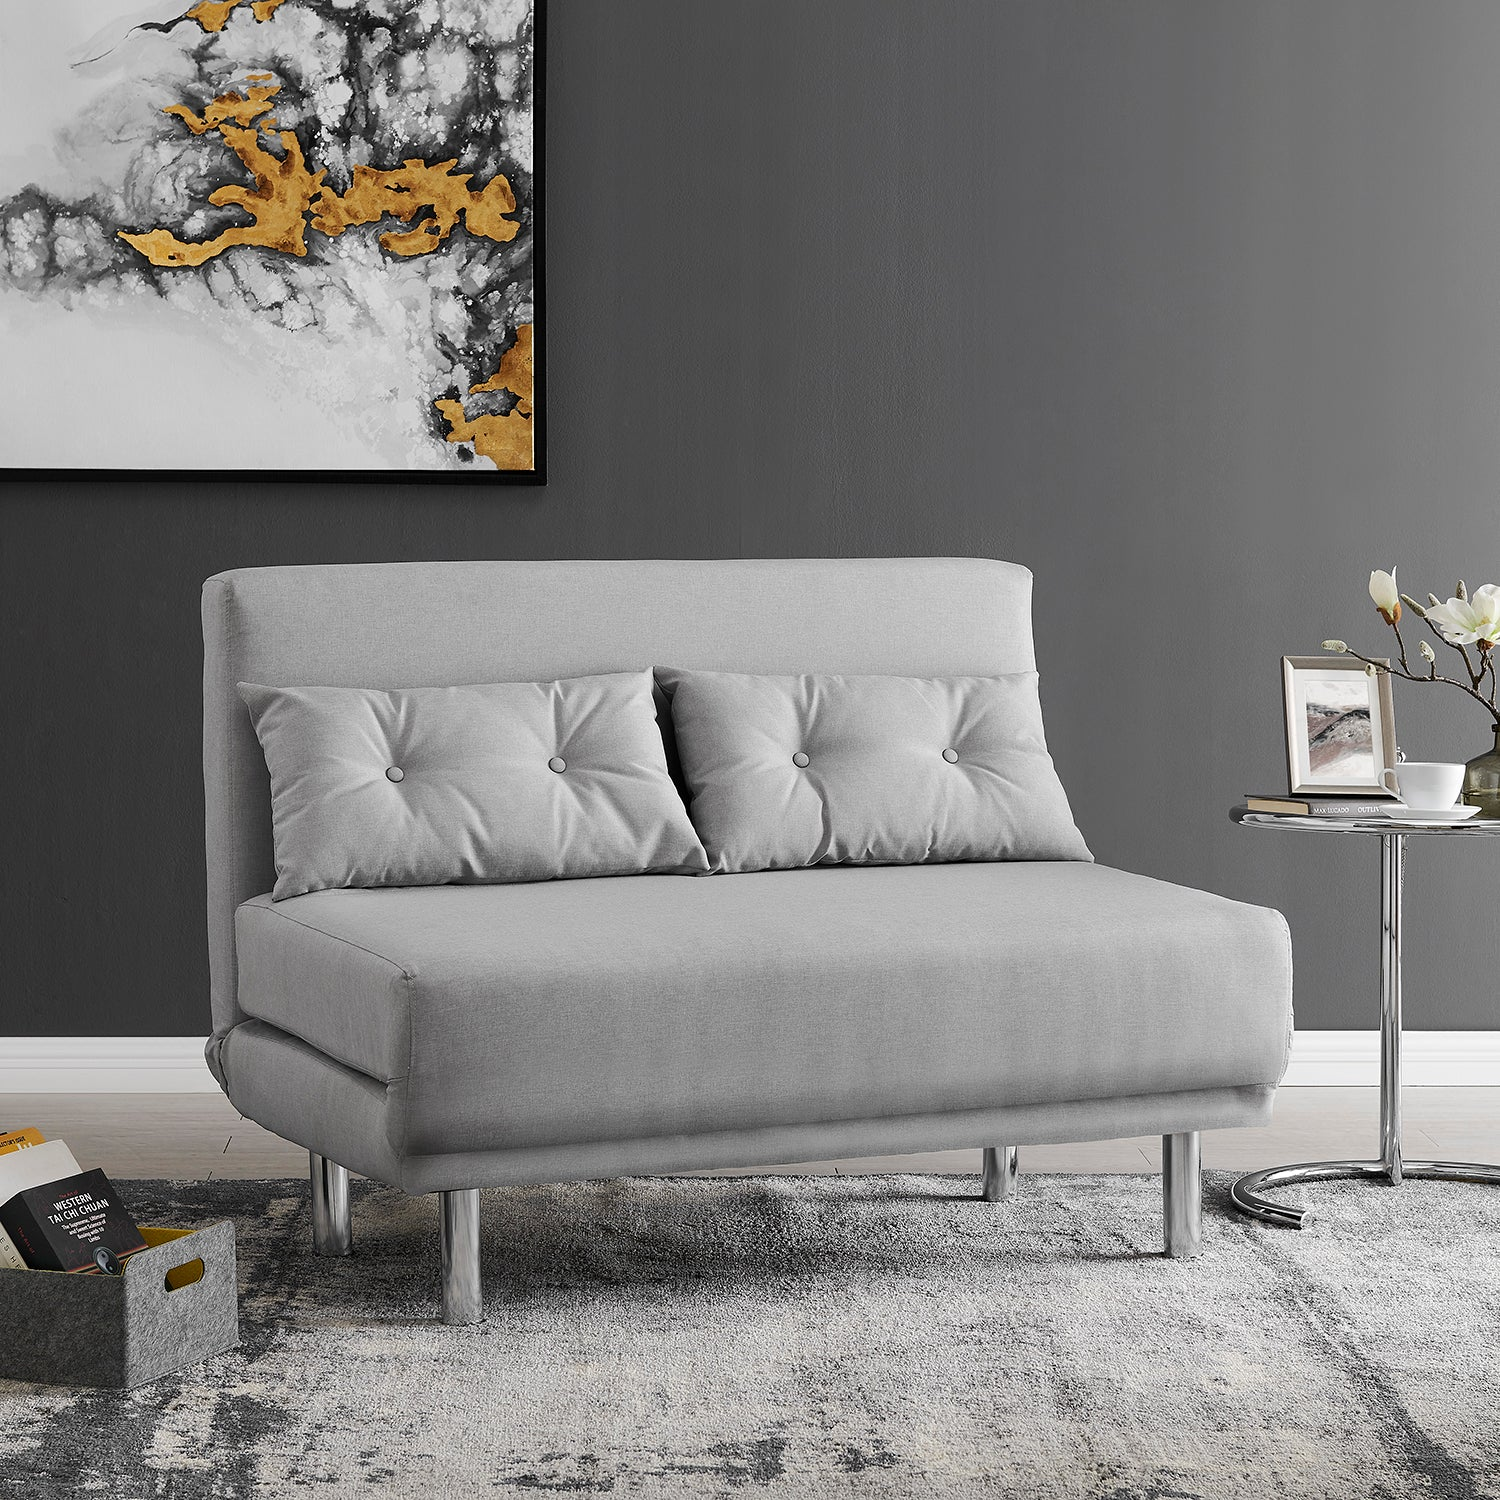 Picture of: Algo 2 Seater Small Double Folding Sofa Bed With Cushion Grey Fabric Shop Designer Home Furnishings